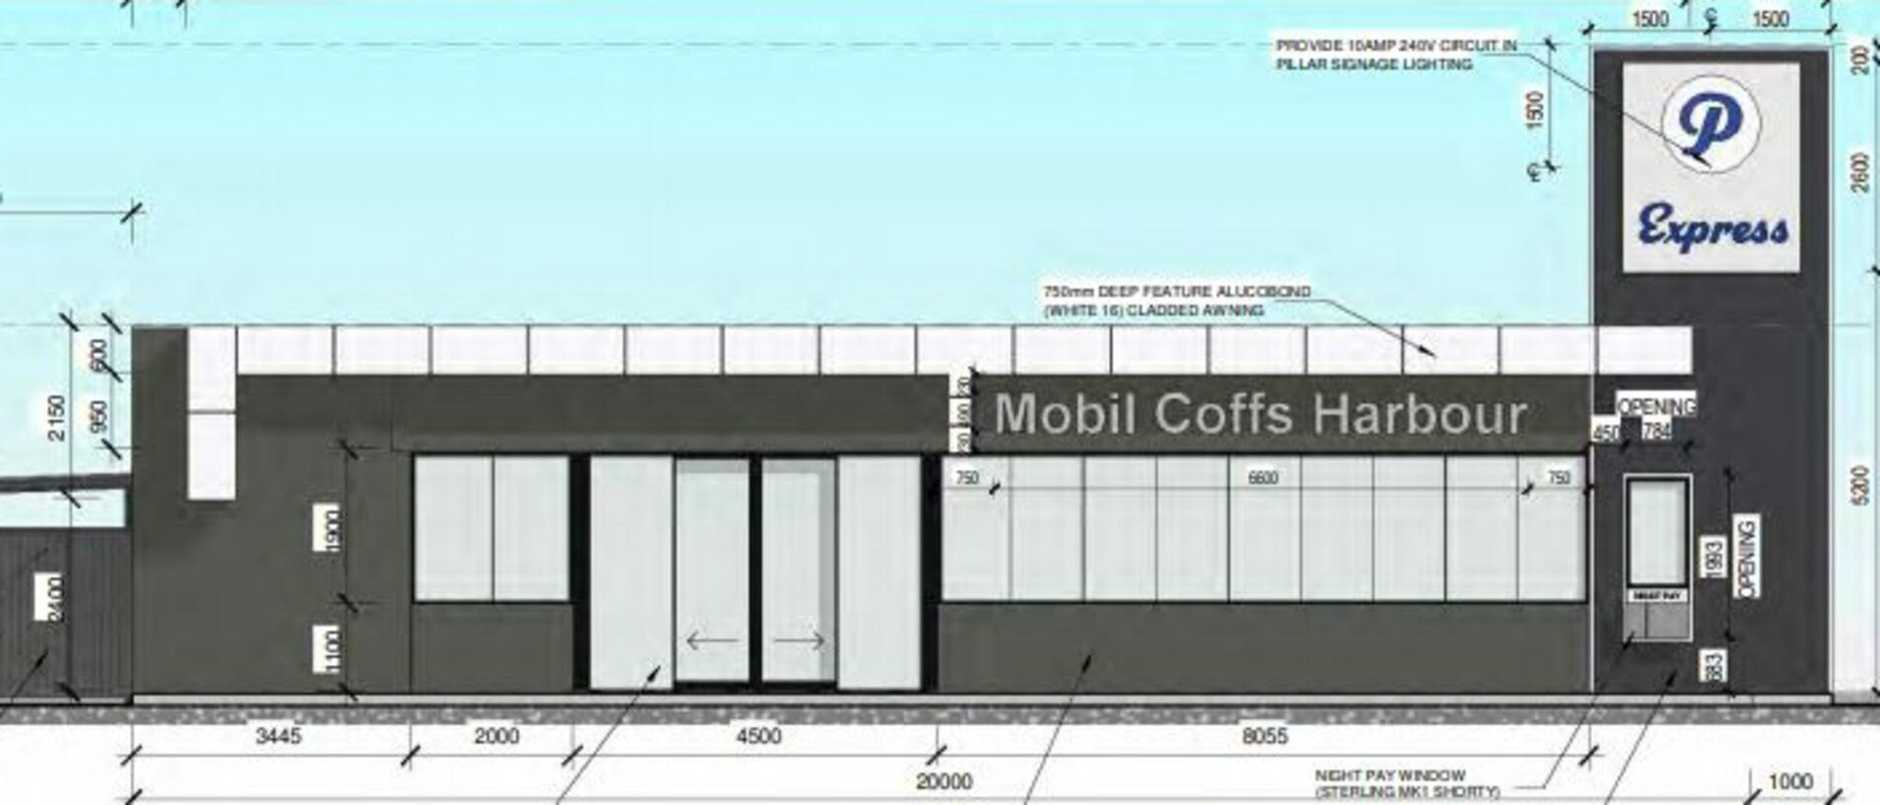 Elevation drawing of the proposed service centre on the Pacific Highway in Coffs Harbour.